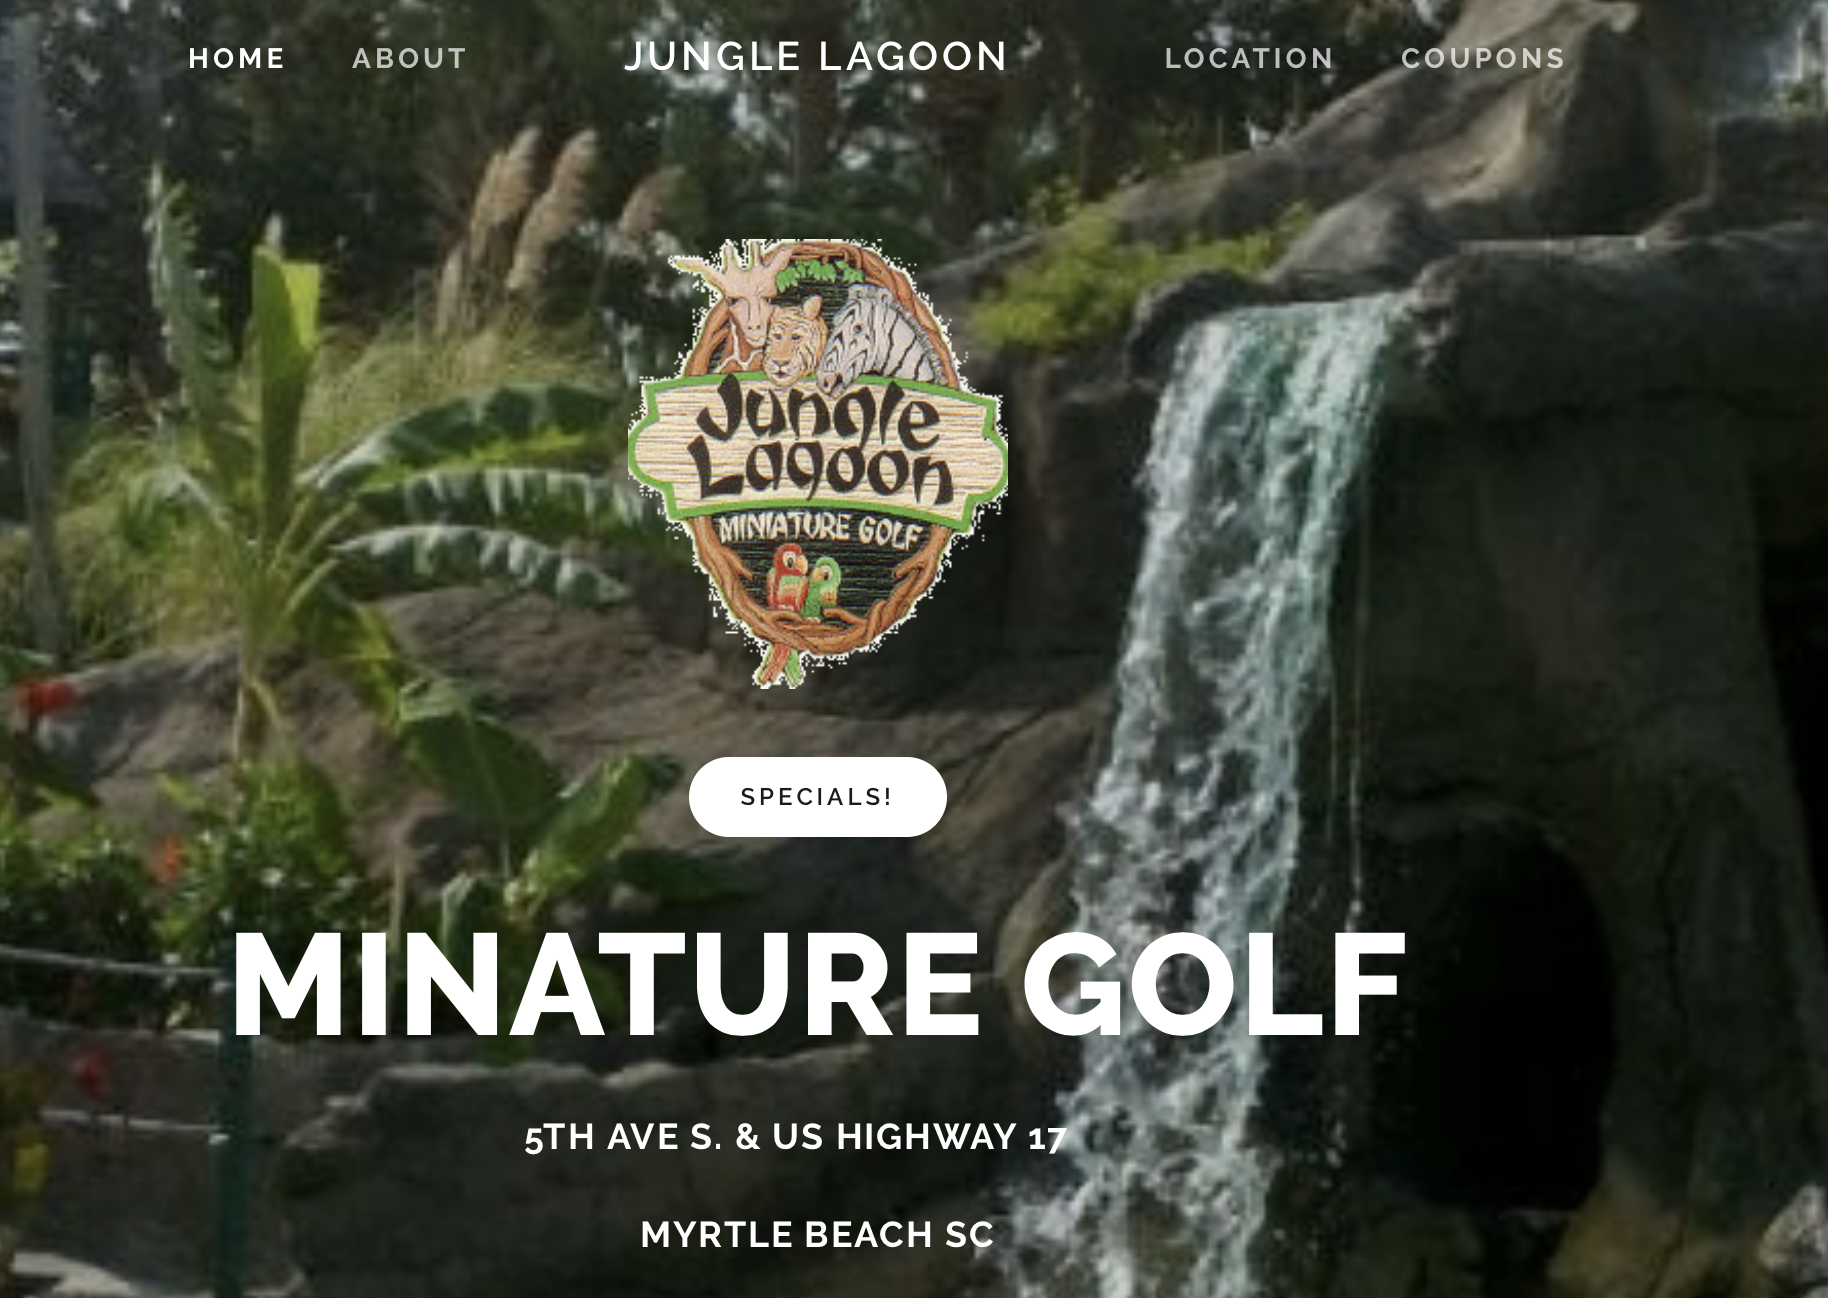 Jungle Lagoon miniature golf business. Click on the image above to view the website.